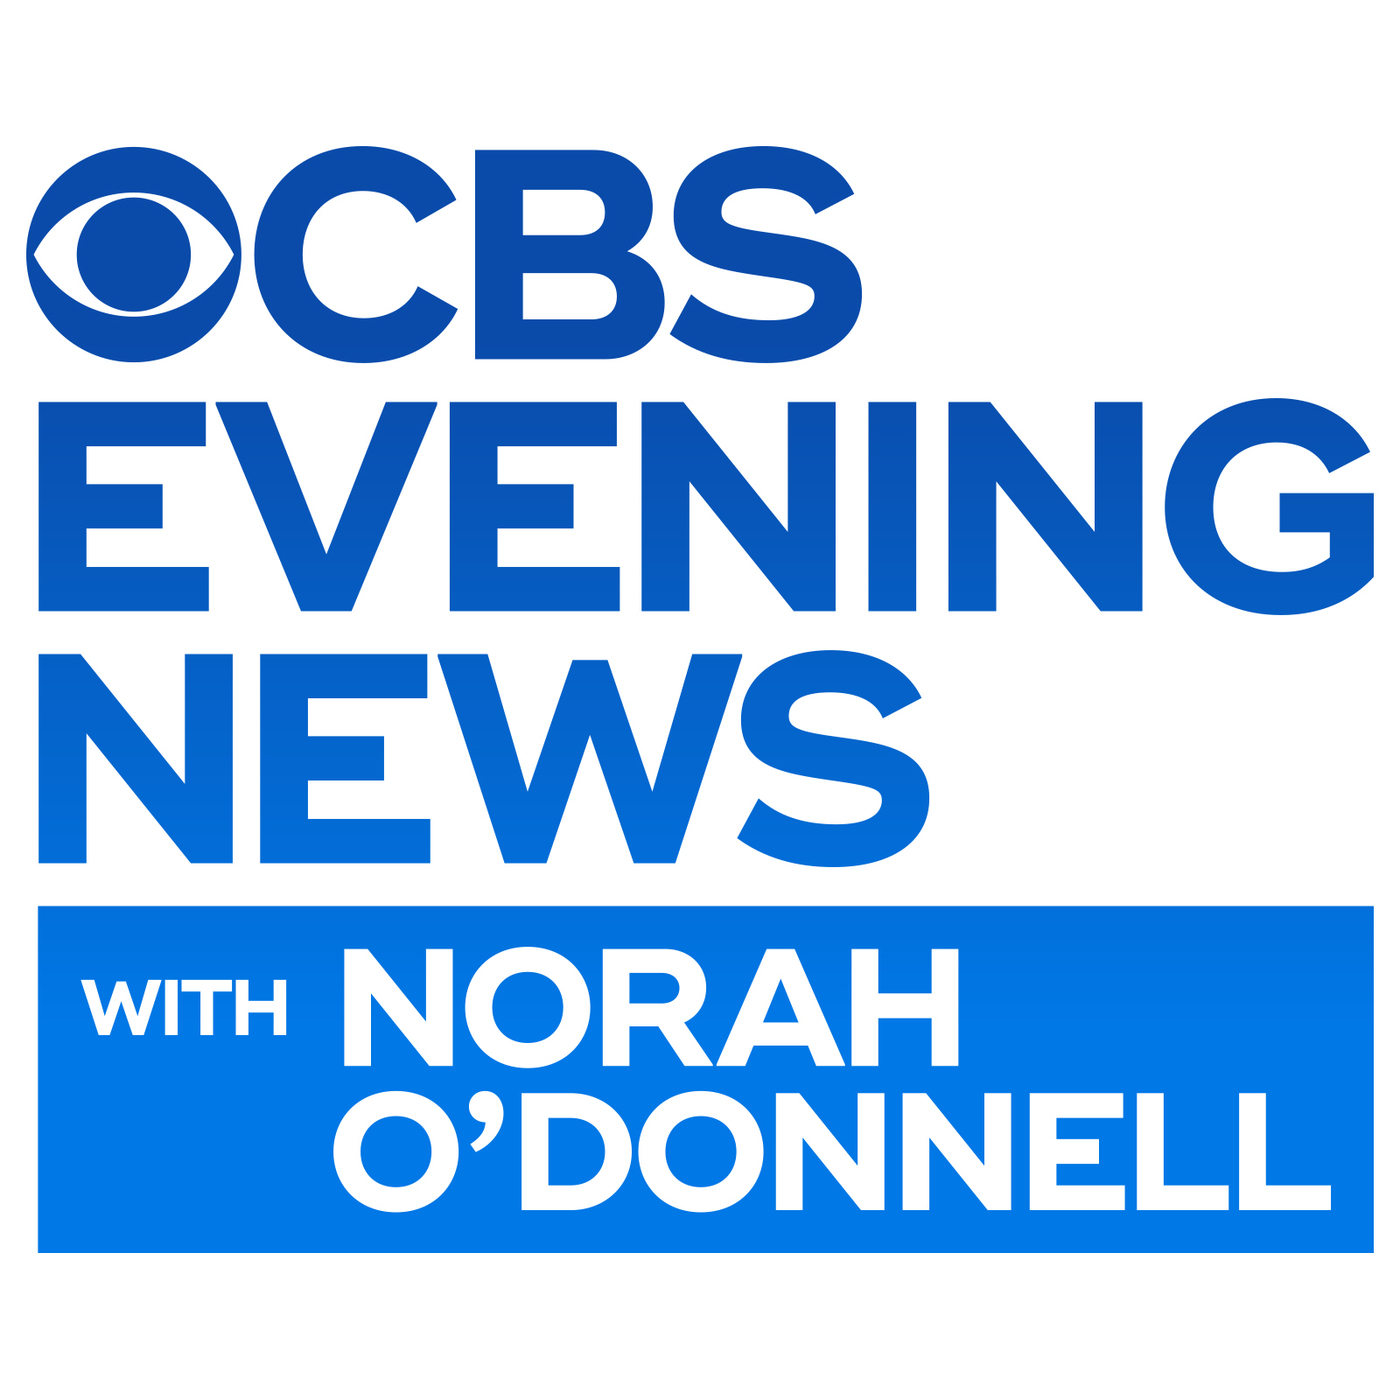 CBS Evening News with Norah O'Donnell, 03/23